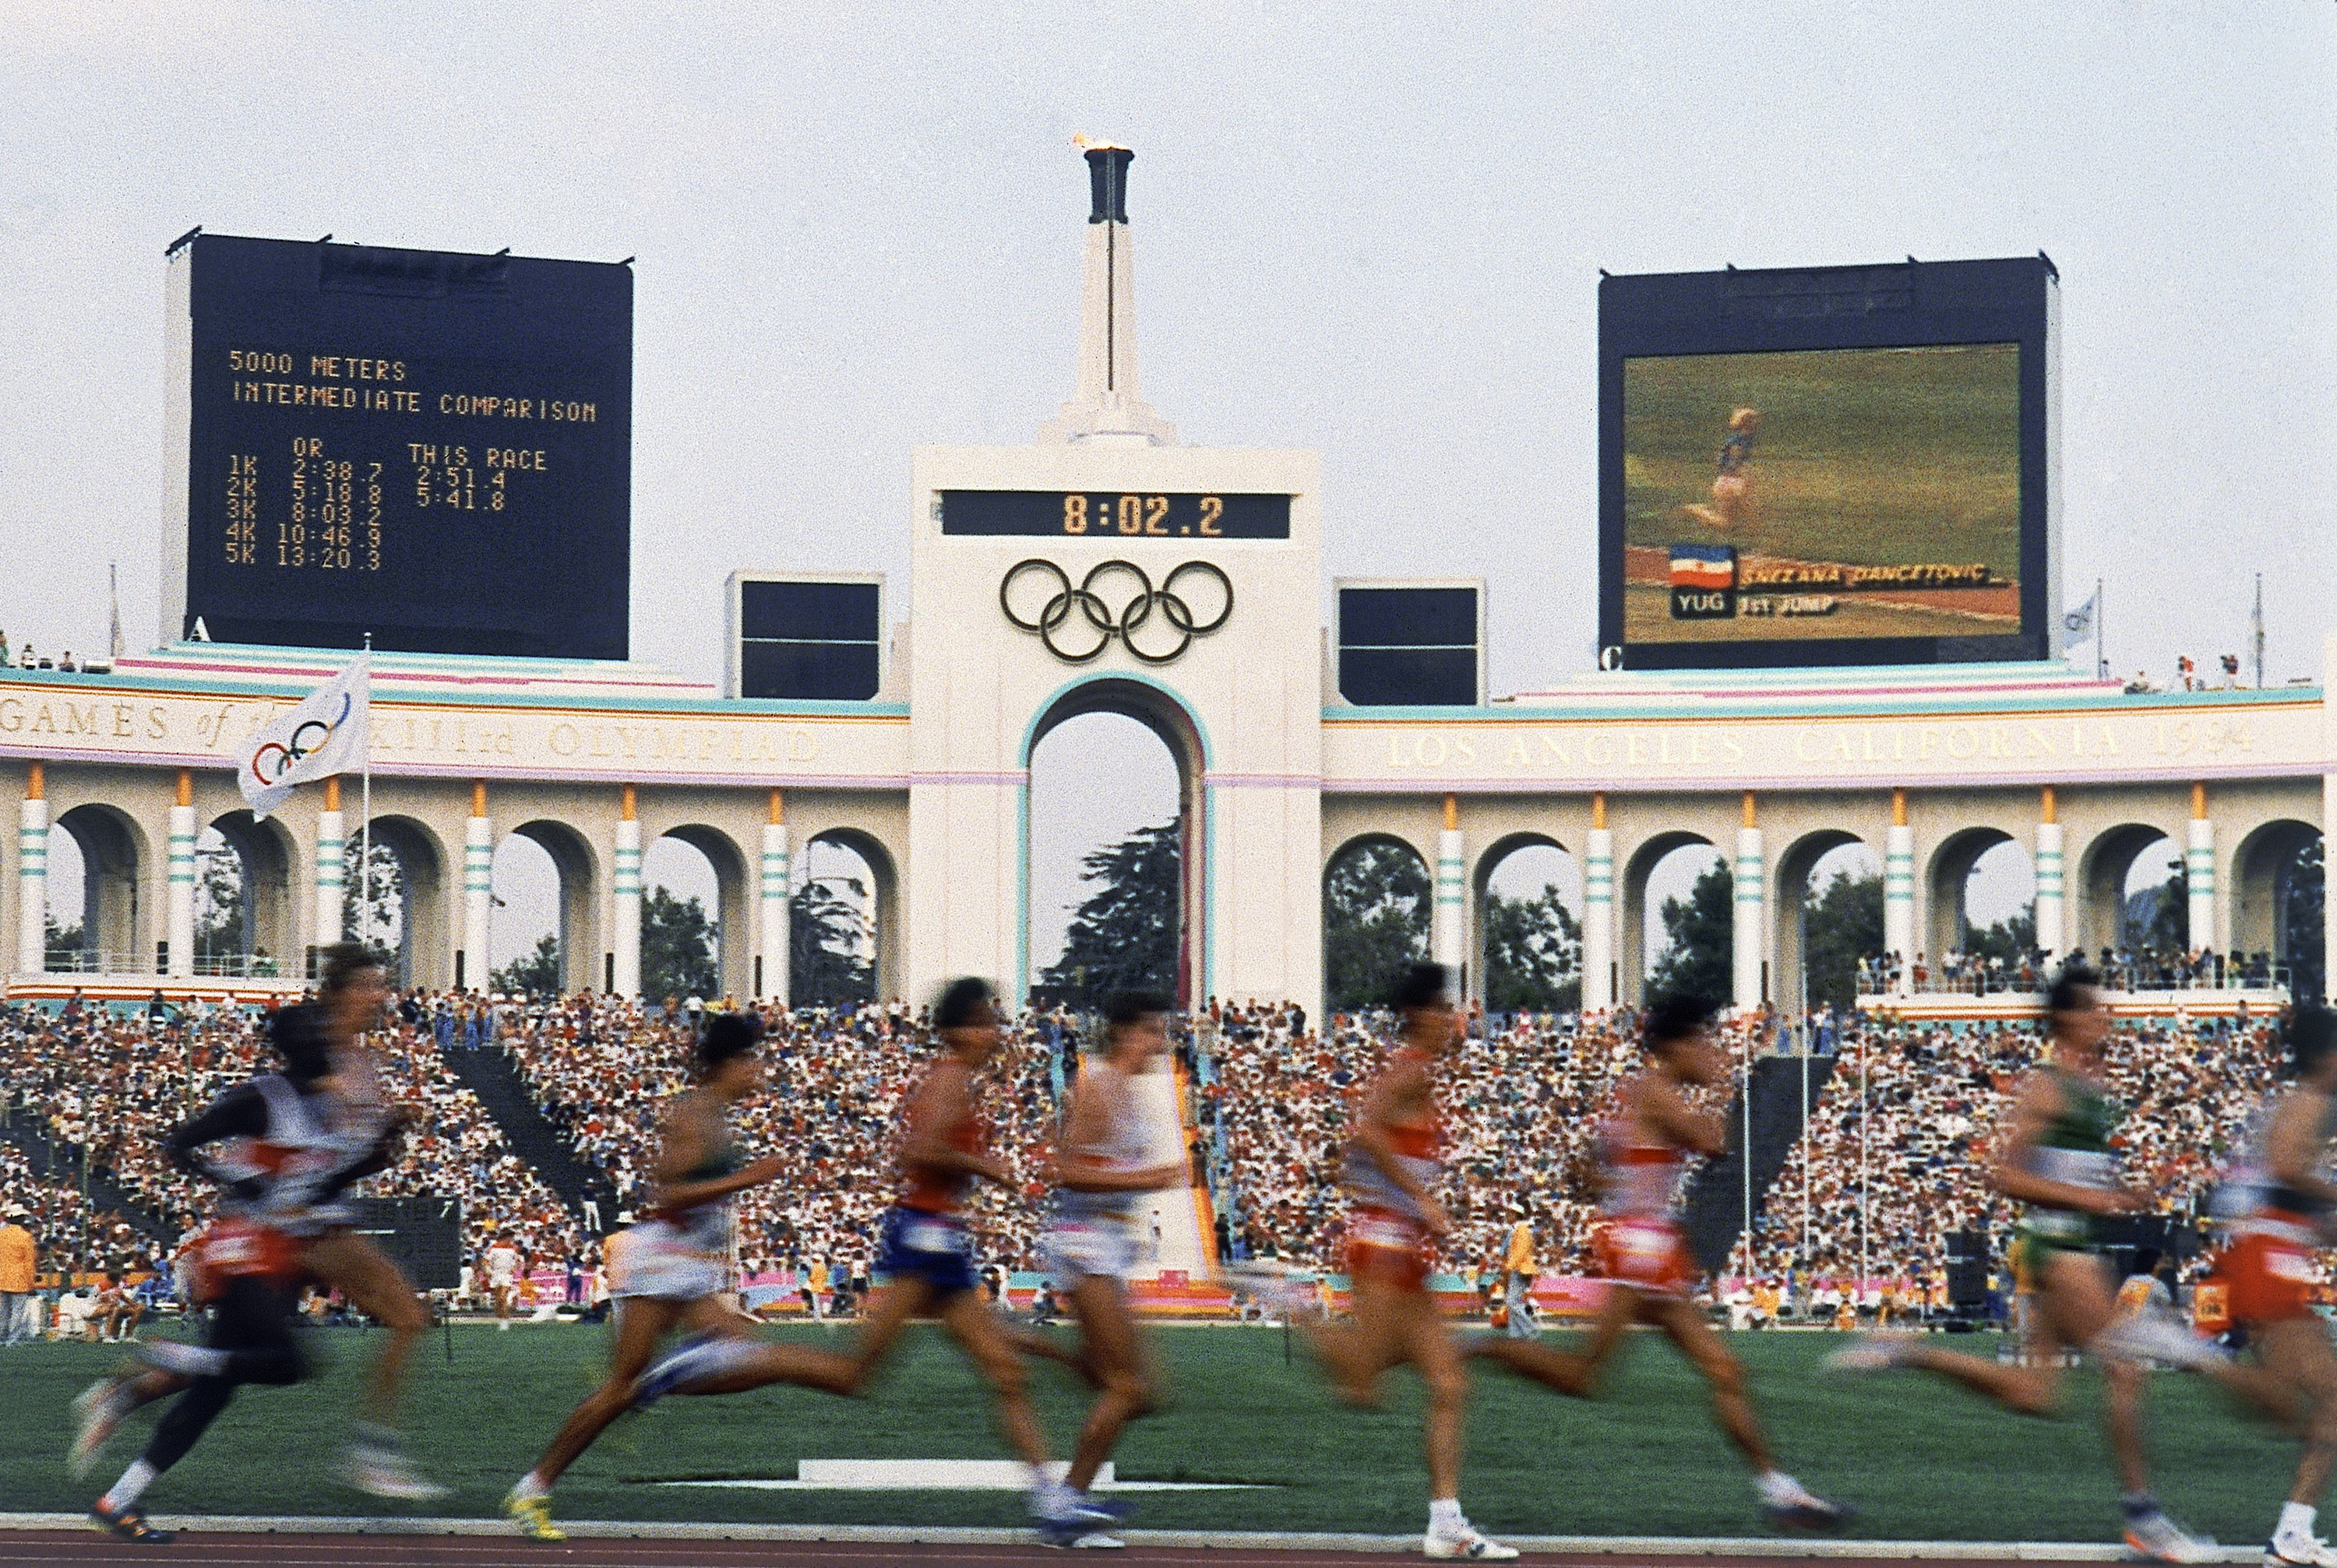 FILE - In this Aug. 1984 file photo, competitors run in the men's 5,000 meters at the Olympic Games in Los Angeles. The US Olympic Committee selected Los Angeles as replacement candidate for 2024 games Tuesday, Sept. 1, 2015.The US Olympic Committee selec